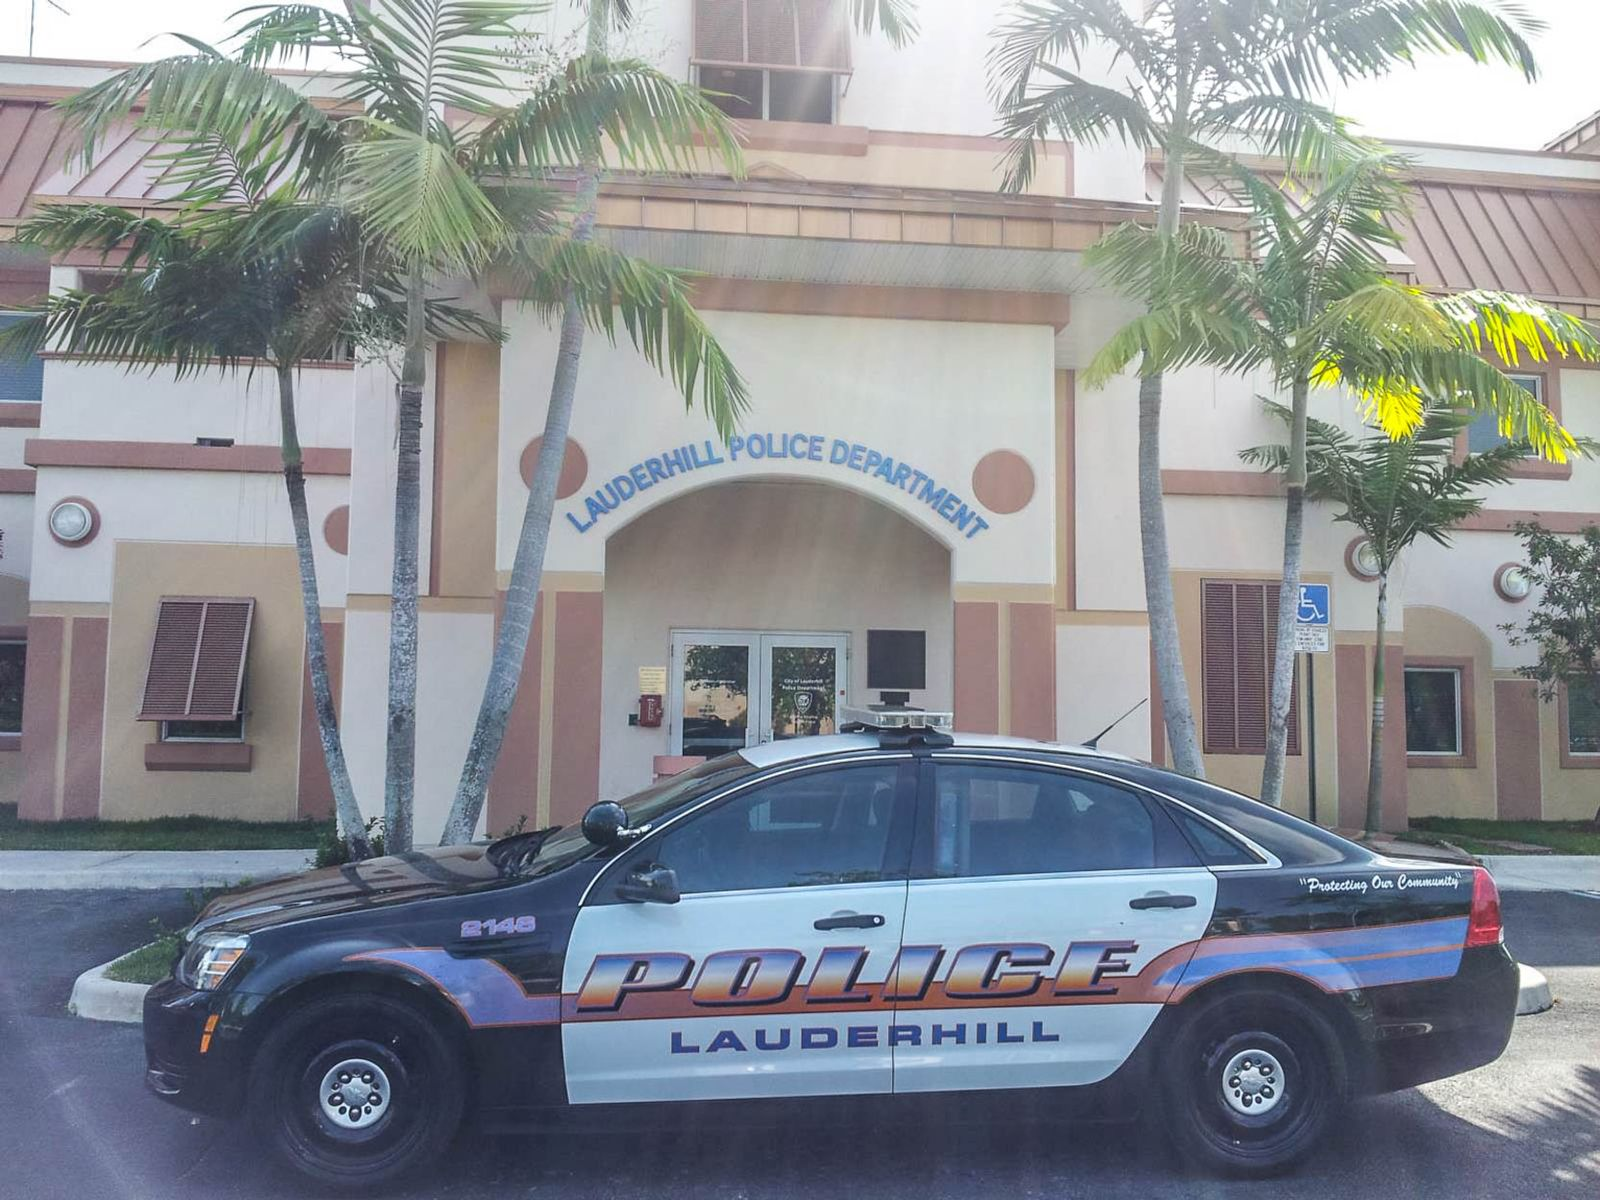 Lauderhill police department charges require a lauderhill criminal defense attorney